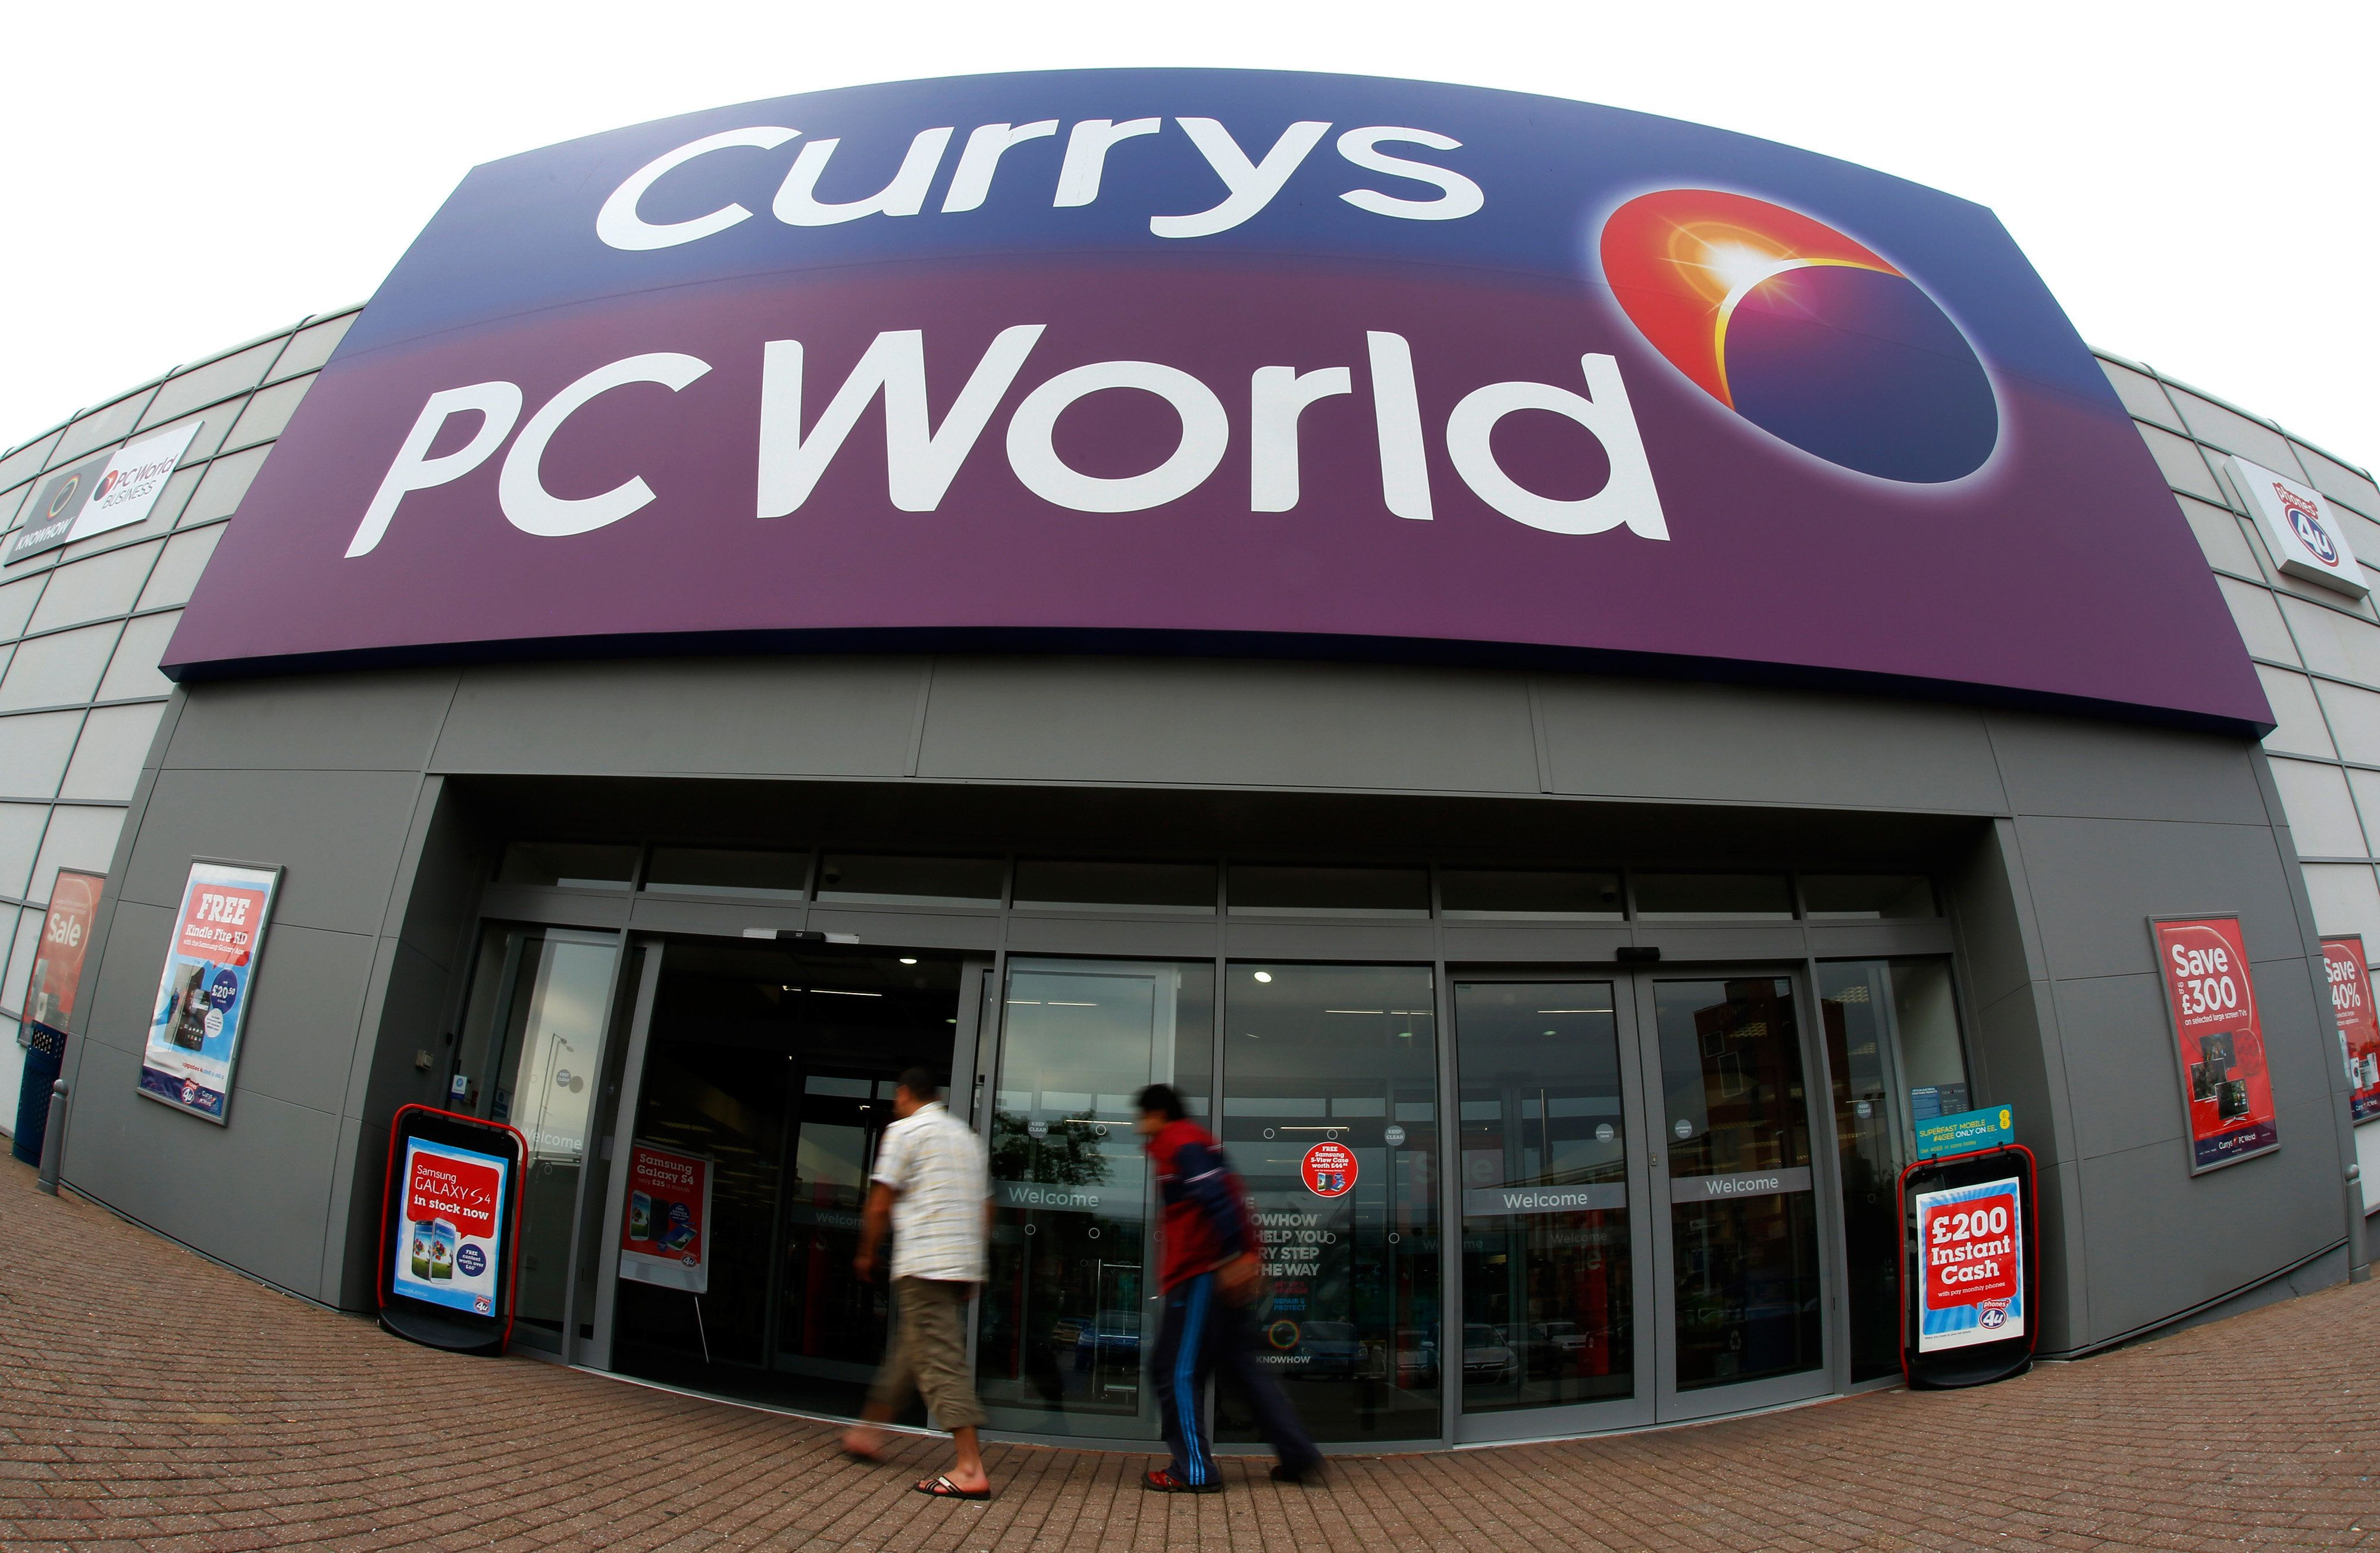 Black Friday 2016 Opening Times And Deals For Amazon, Game, Currys, PC World, John Lewis And